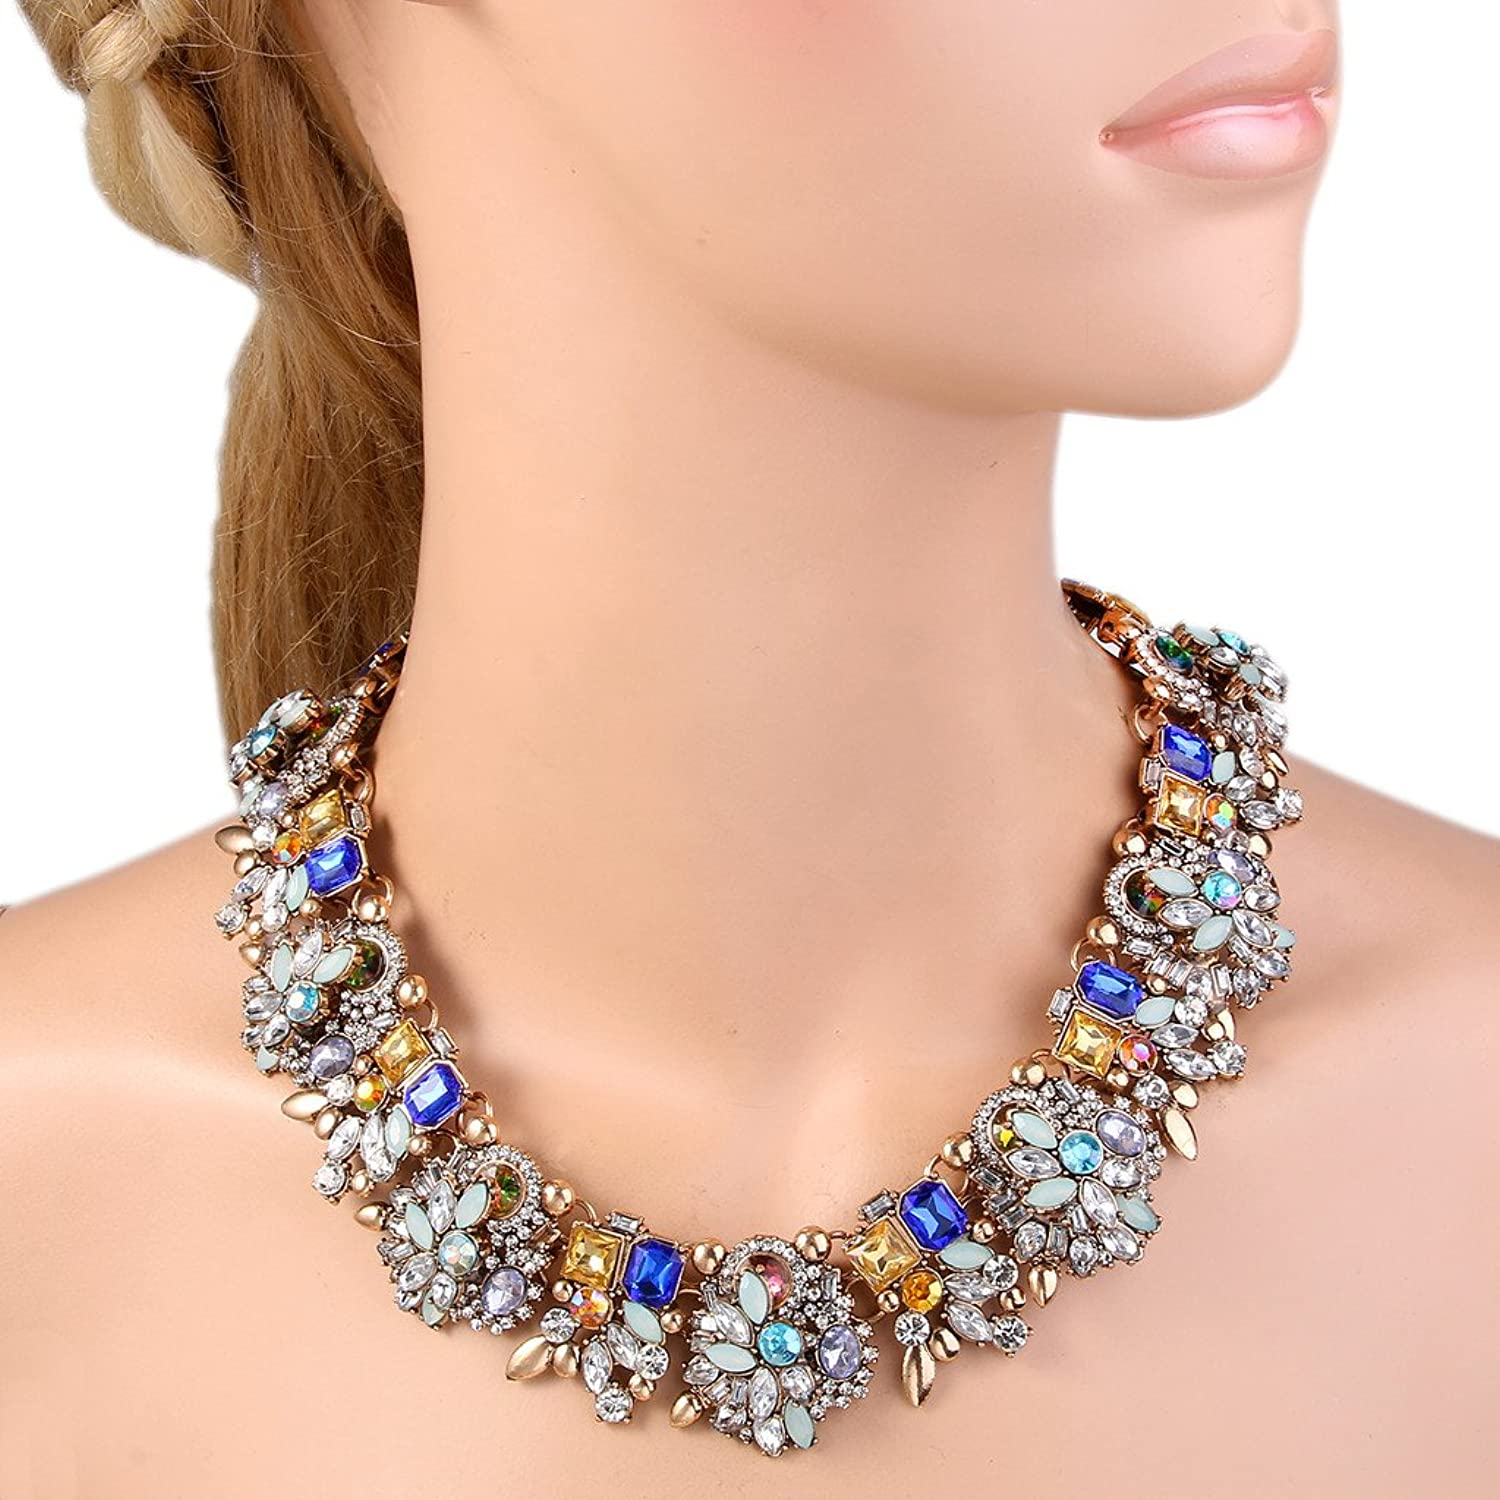 Vintage Style Jewelry, Retro Jewelry  Art Deco Statement Necklace Austrian Crystal Gold-Tone $22.99 AT vintagedancer.com